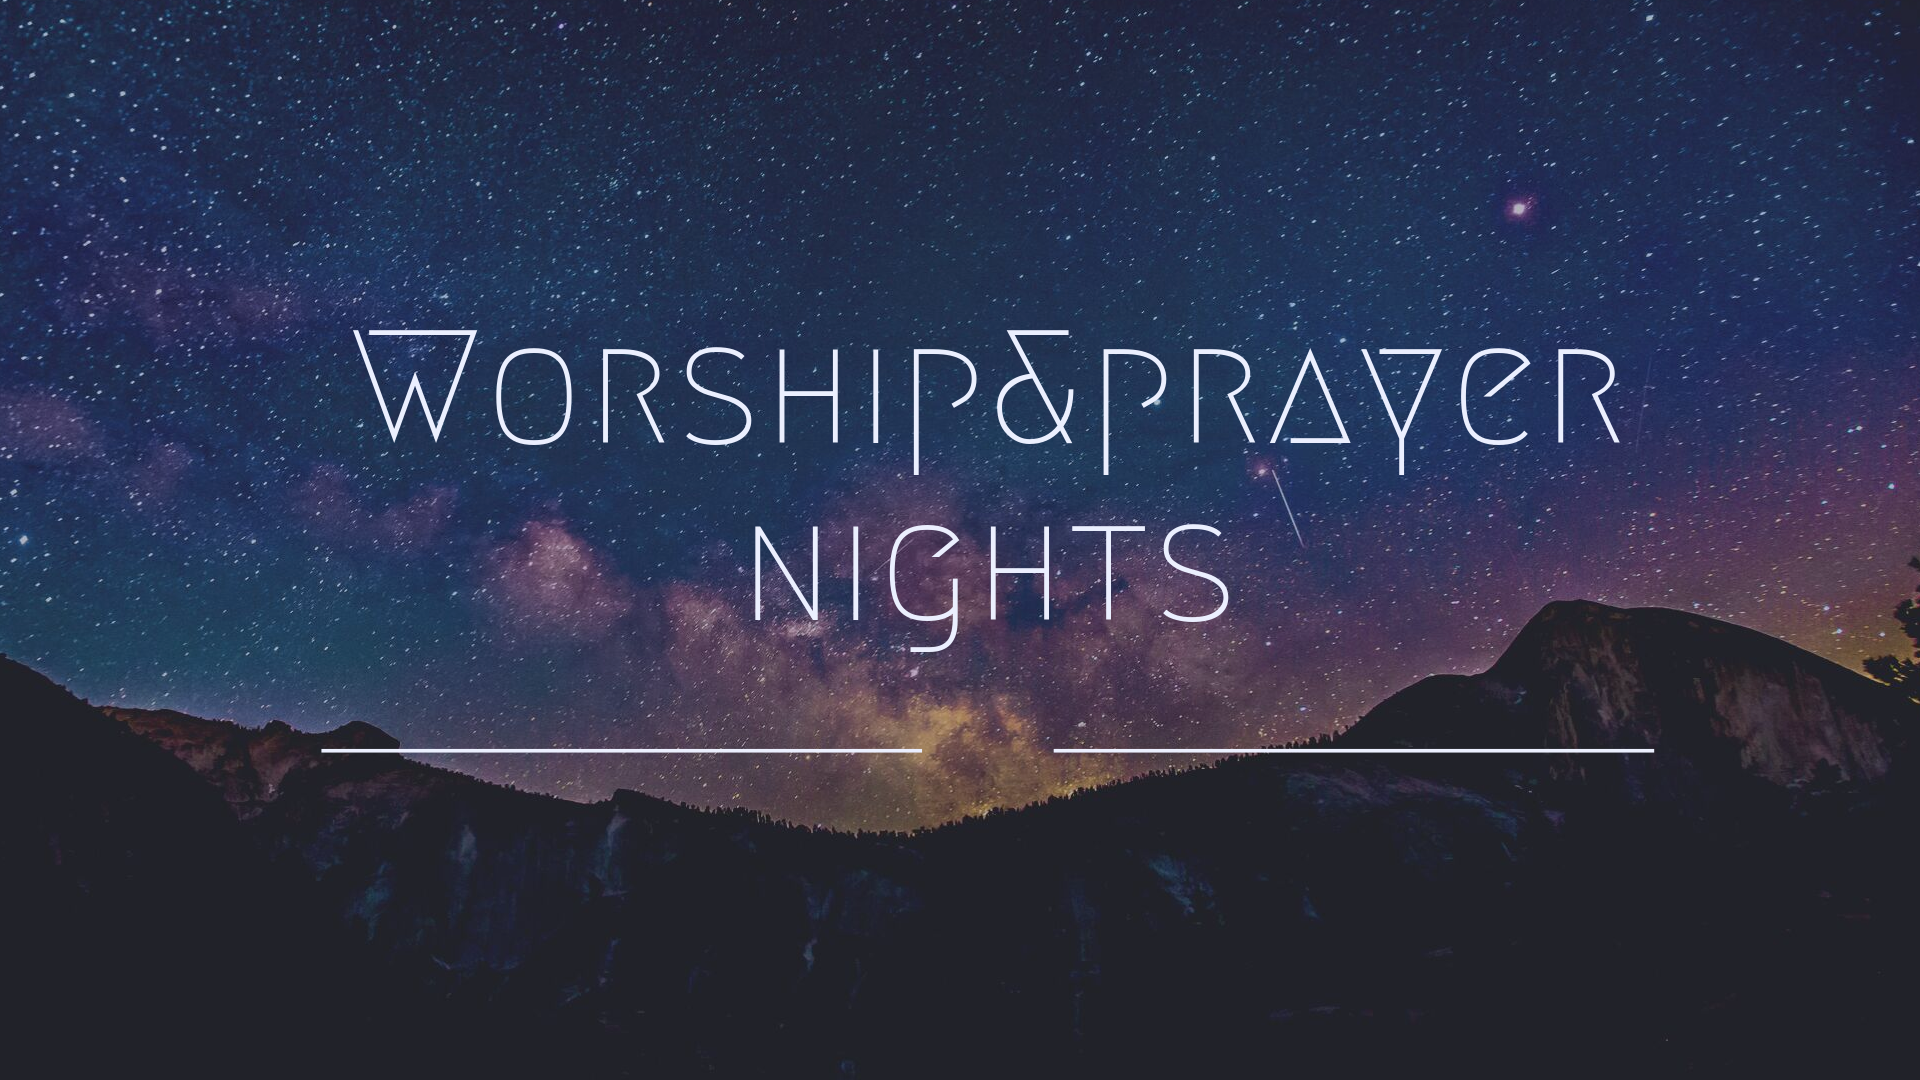 Worshipprayer nights.PNG image